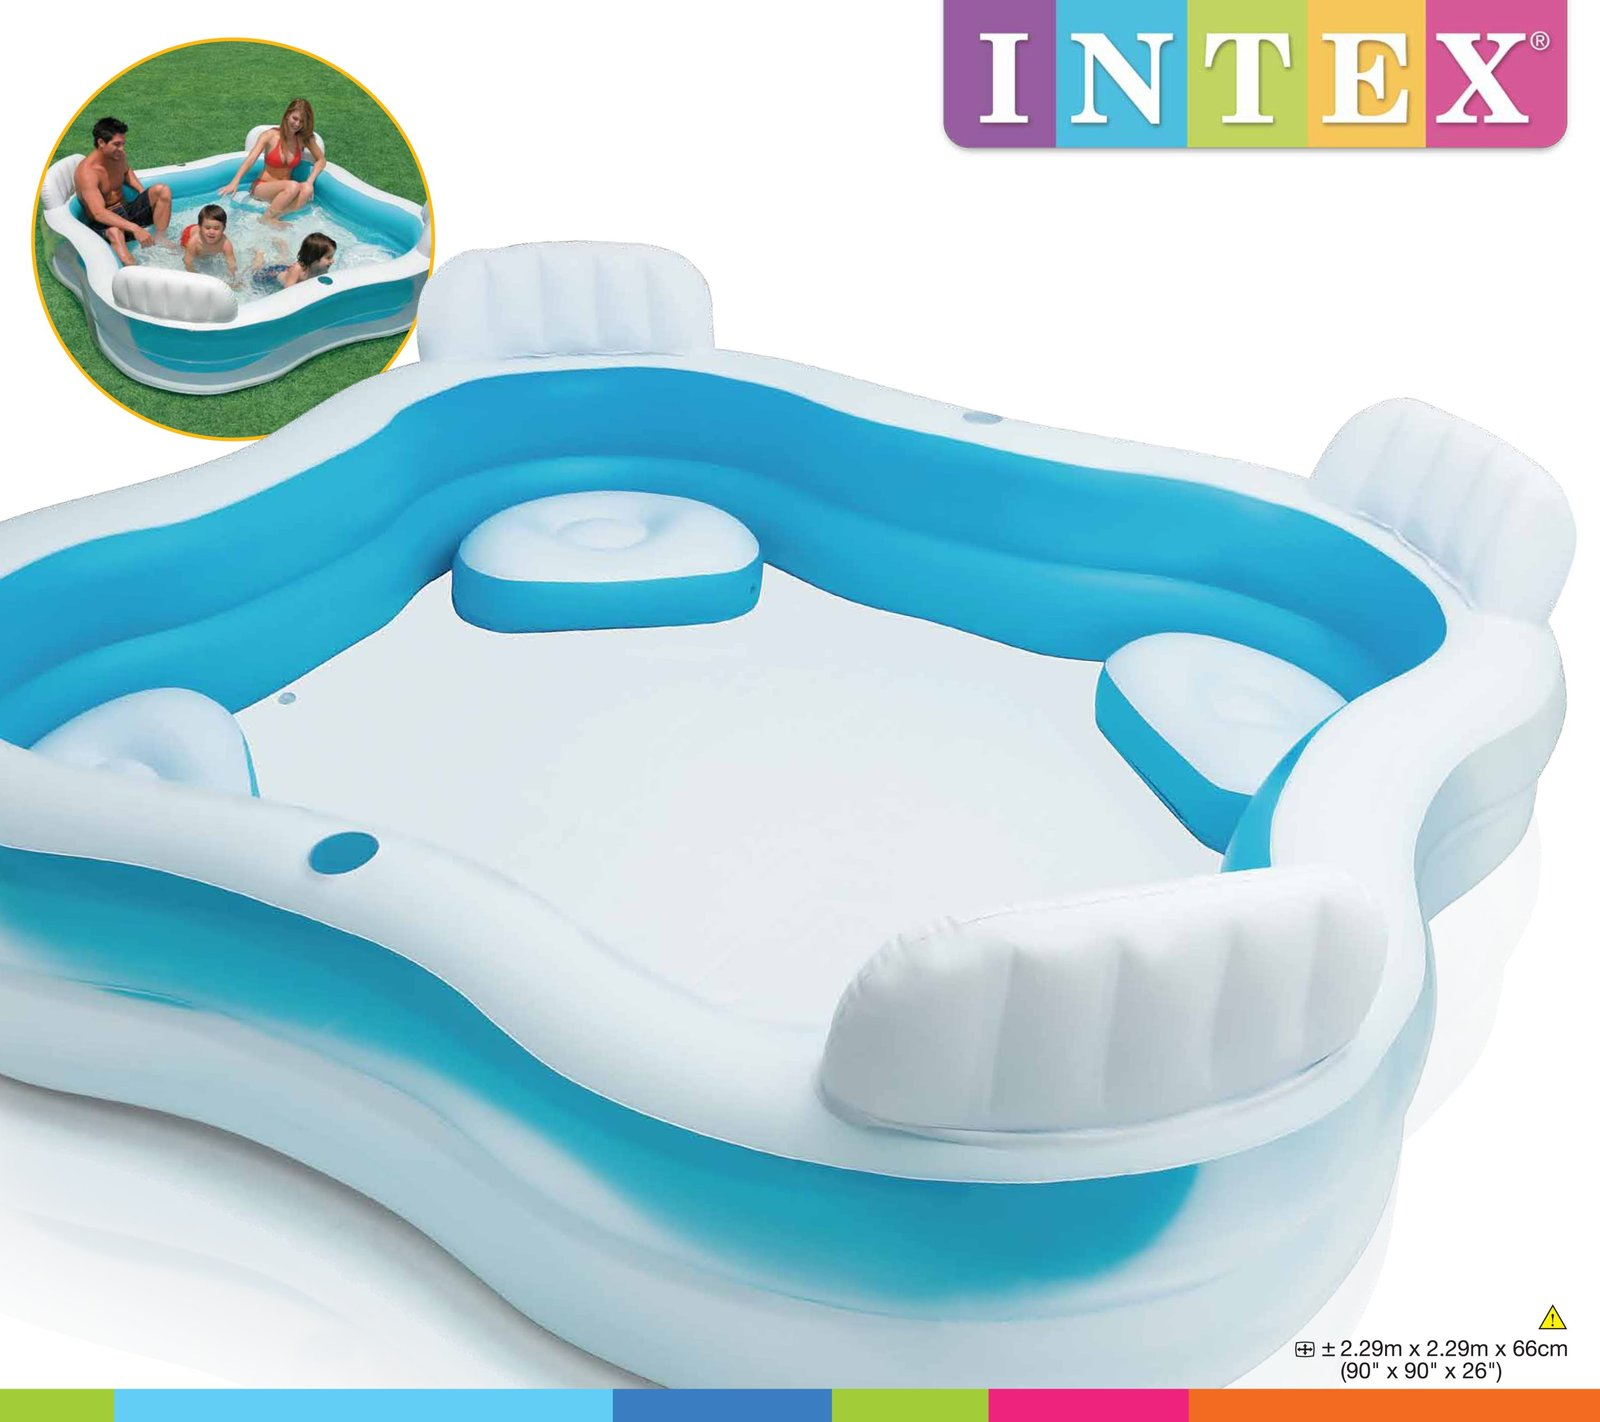 Intex swim center family lounge inflatable pool toy at mighty ape australia Intex inflatable swimming pool